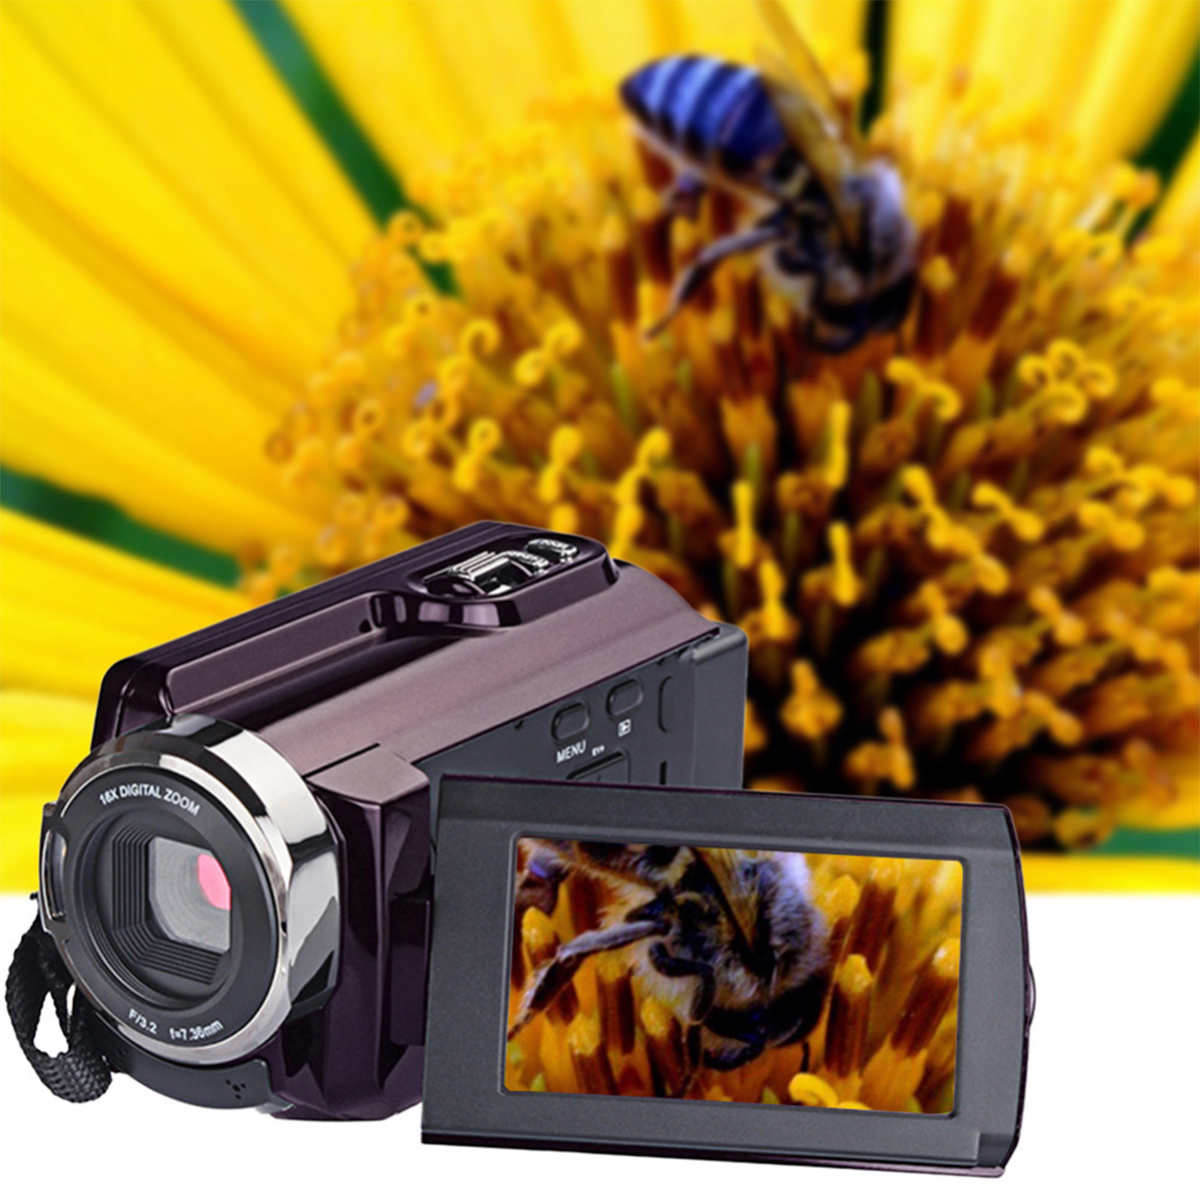 New 4K Camcorder Video Camera Camcorders Ultra HD Digital Cameras and Video Recorder with WifiInfrared Touchscreen Angle Lens